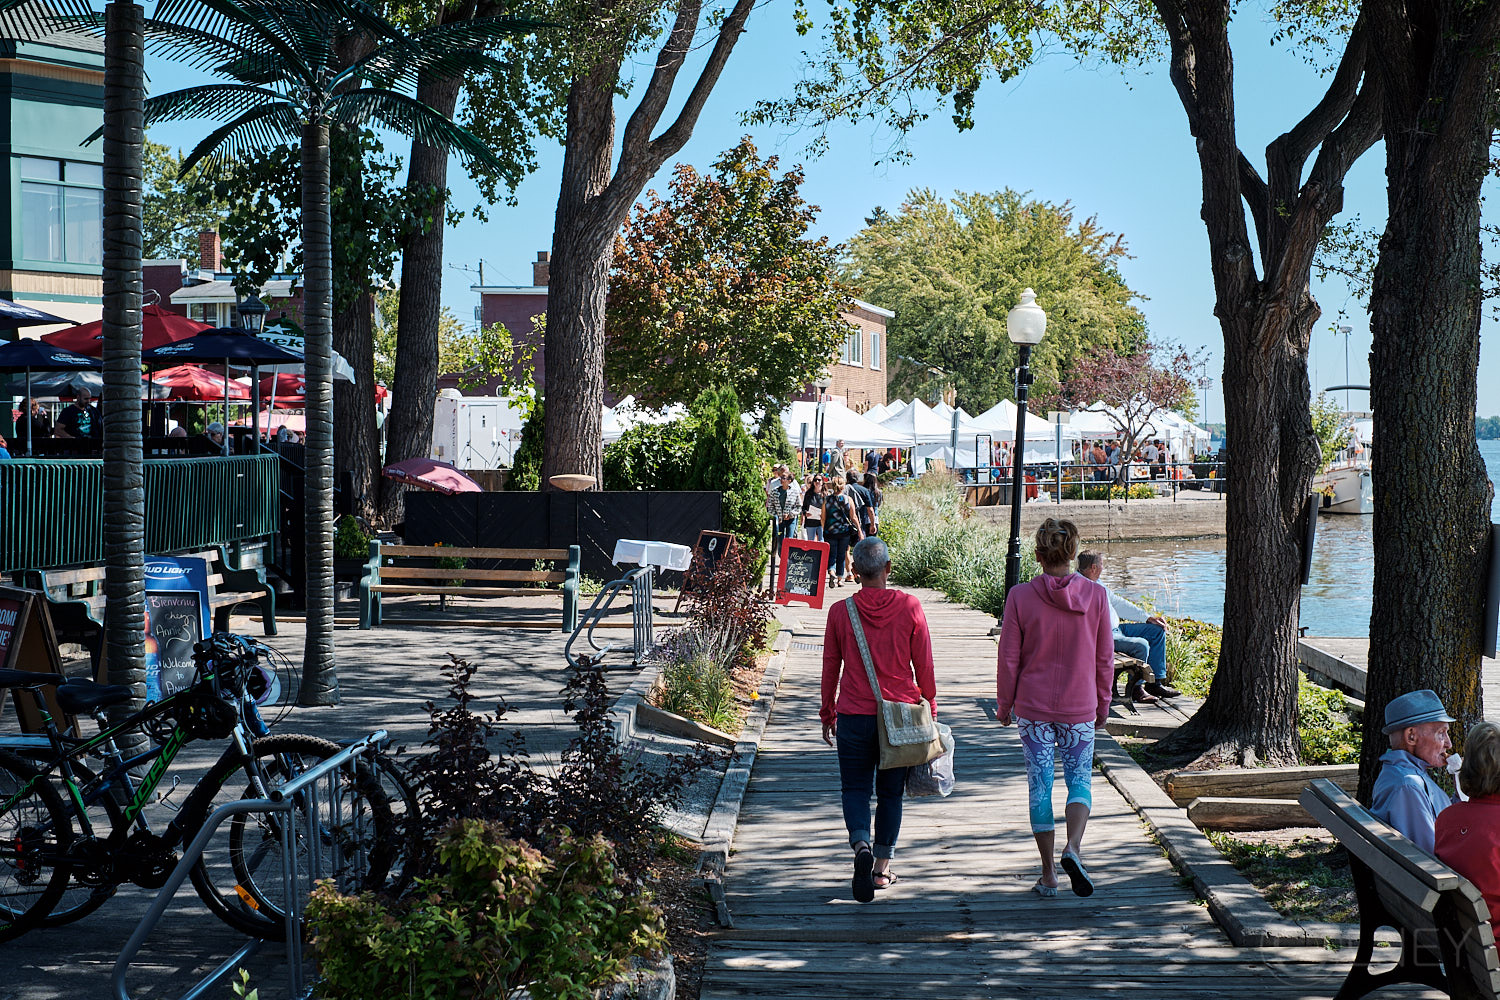 A stroll by the market in sainte-anne-de-bellevue QC